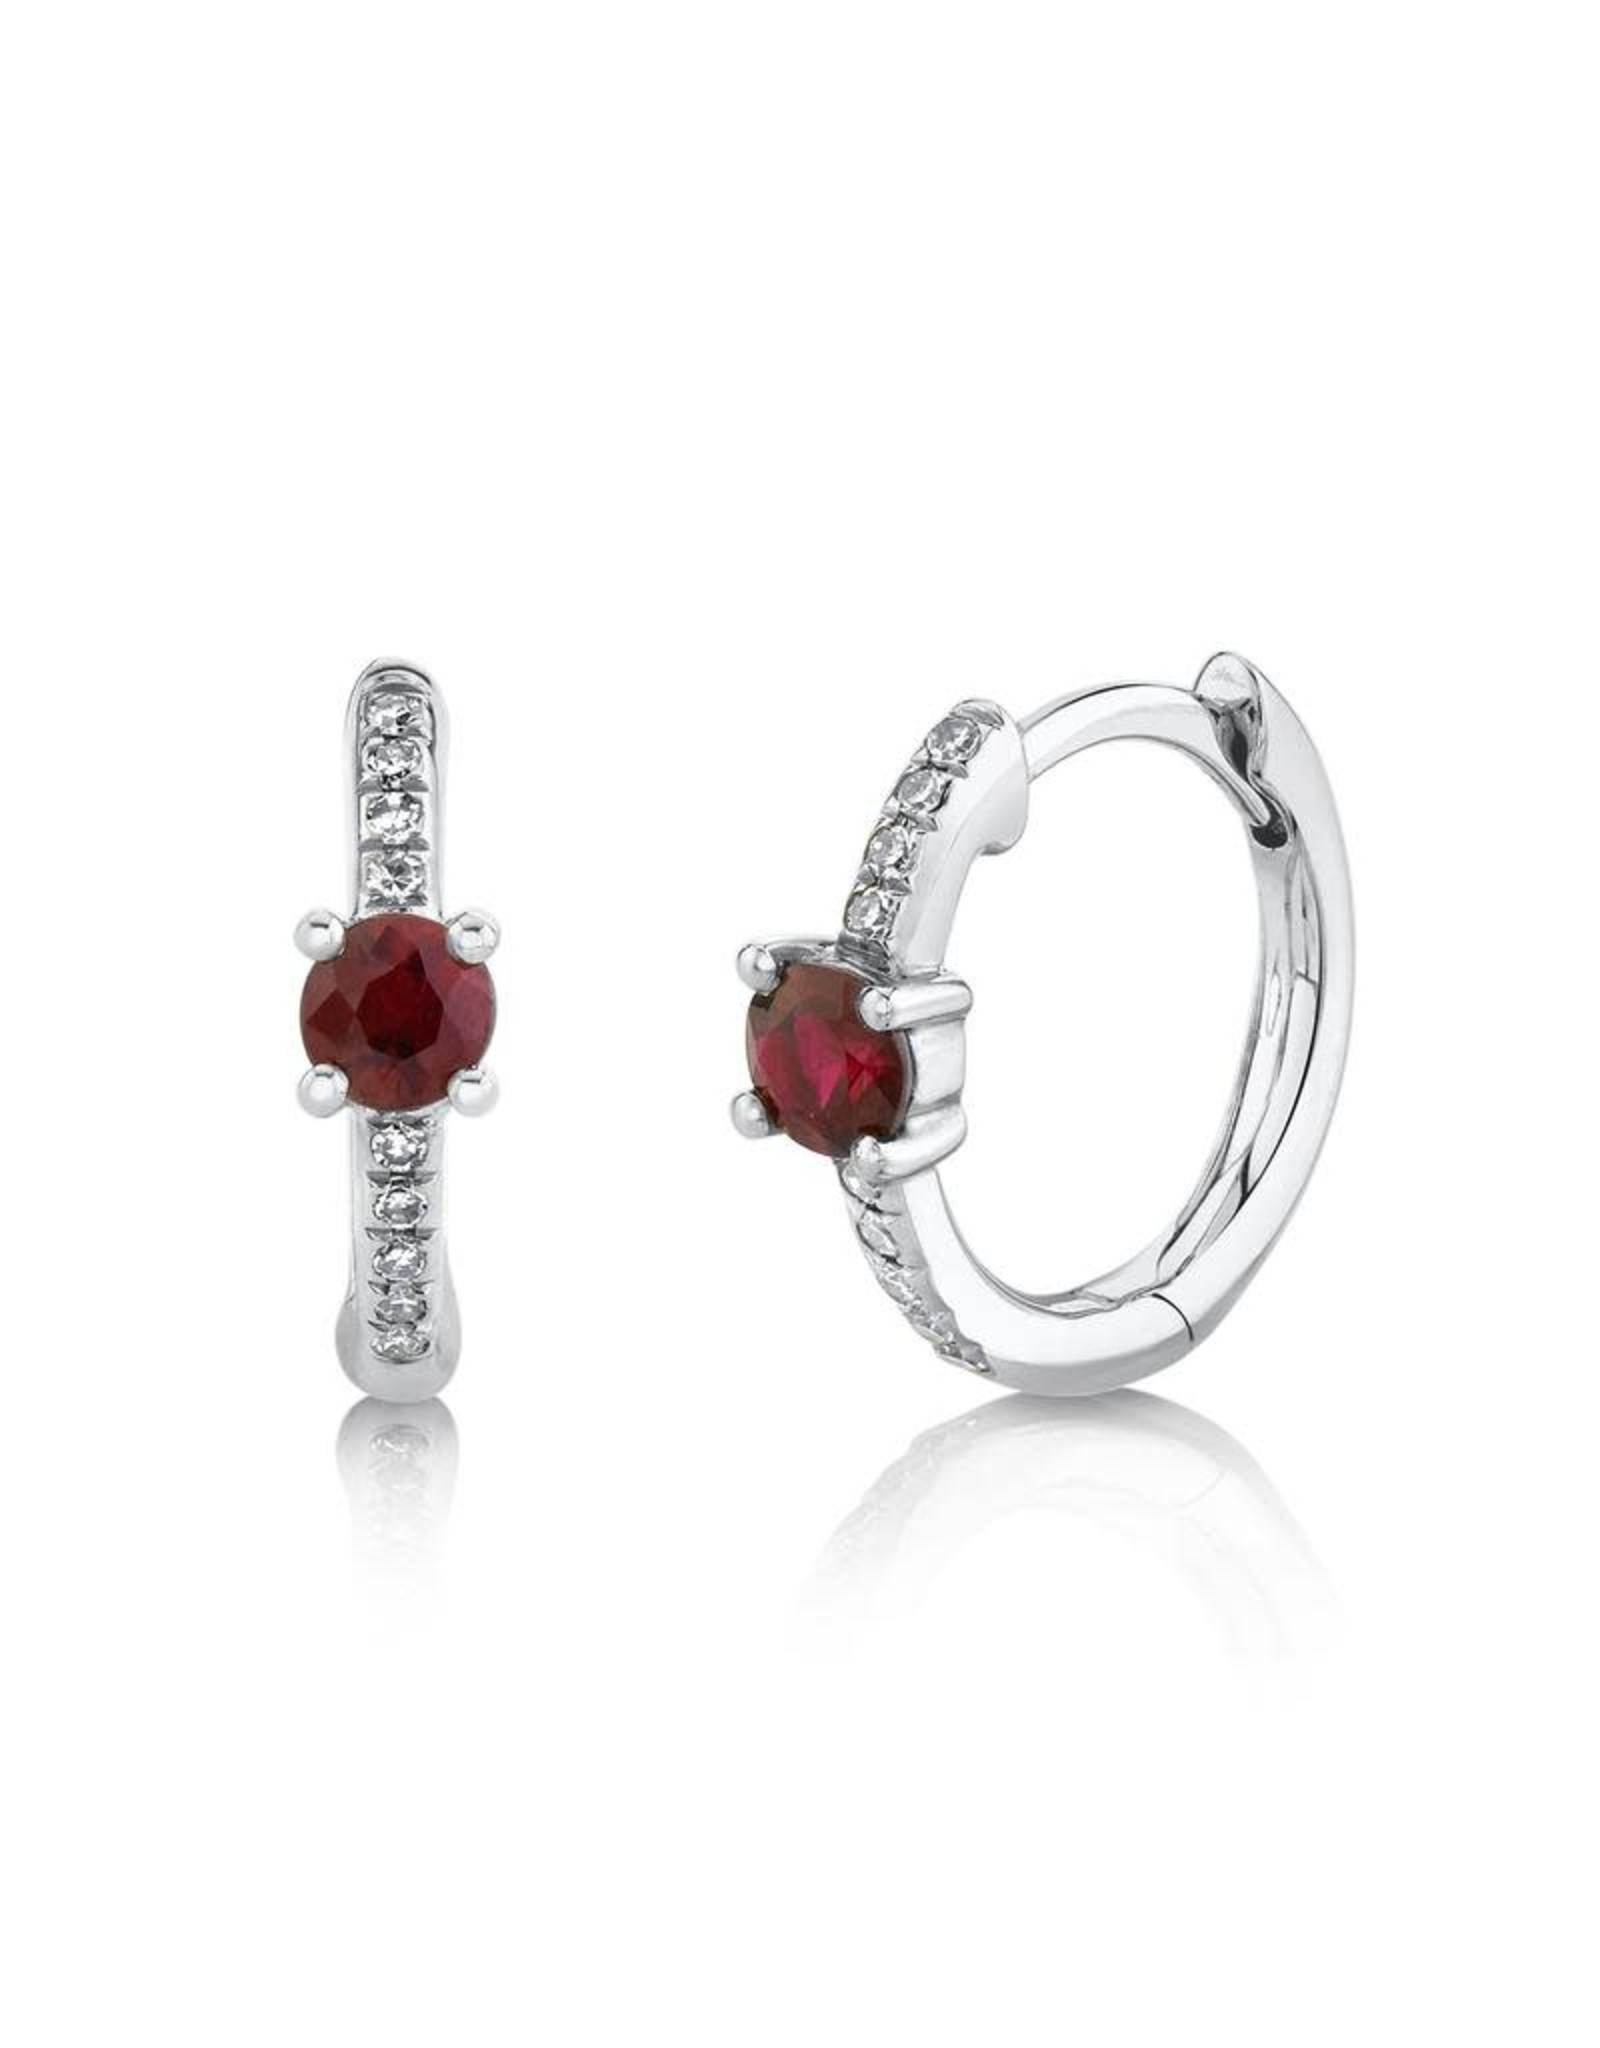 14K White Gold Ruby and Diamond Huggie Earrings, R: 0.29 ct, D: 0.06ct